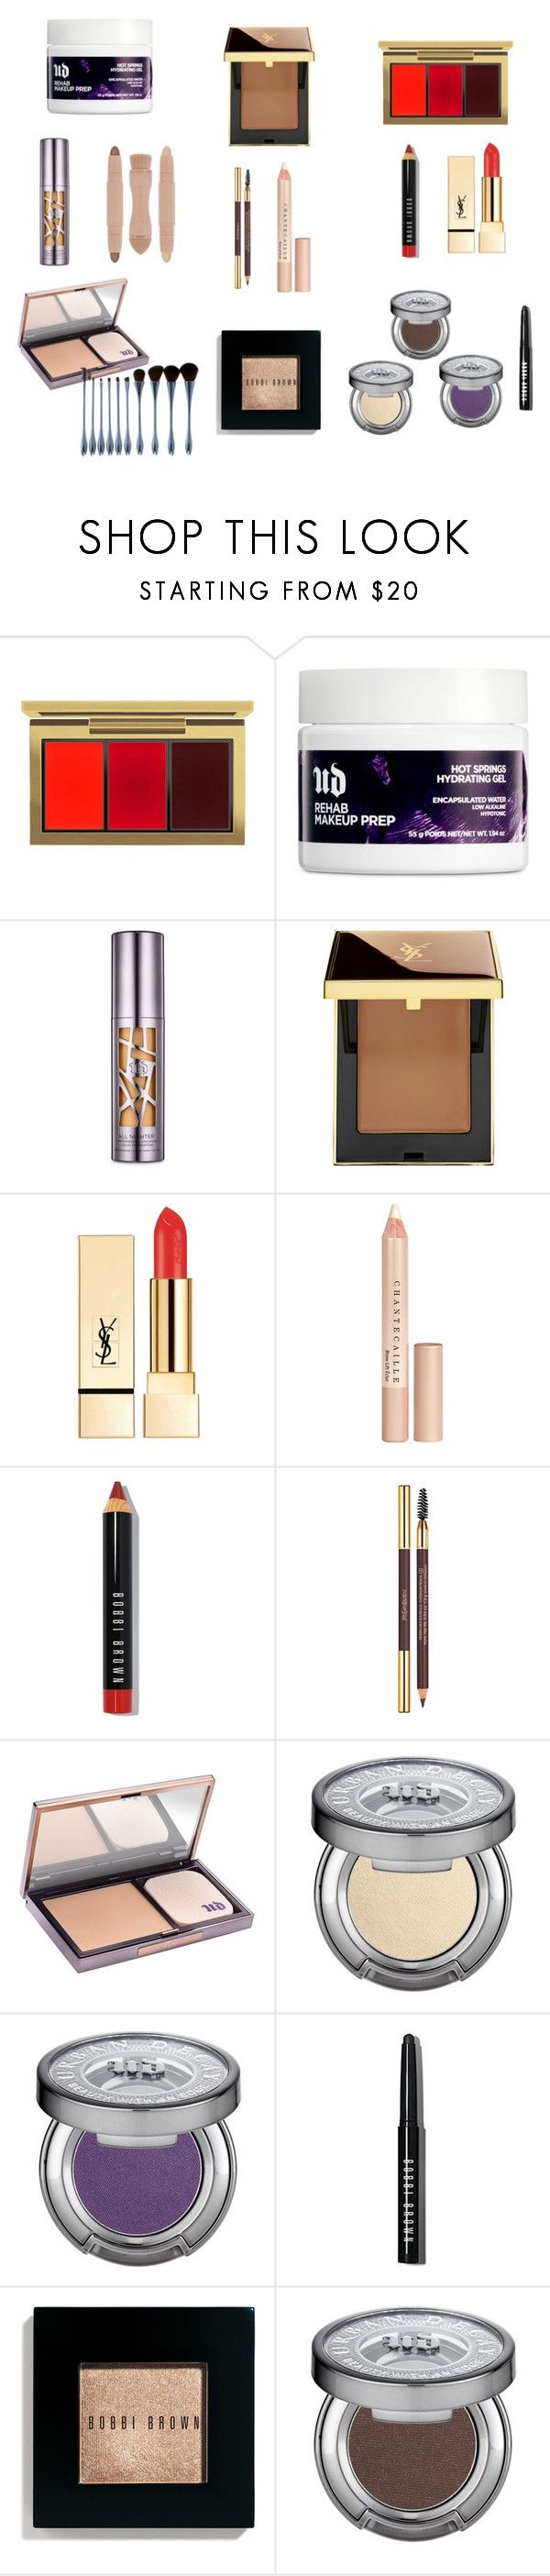 """""""My Formal Makeup Look"""" by pretty1npink on Polyvore featuring beauty, MAC Cosmetics, Urban Decay, Yves Saint Laurent, Chantecaille, Bobbi Brown Cosmetics and My Makeup Brush Set"""